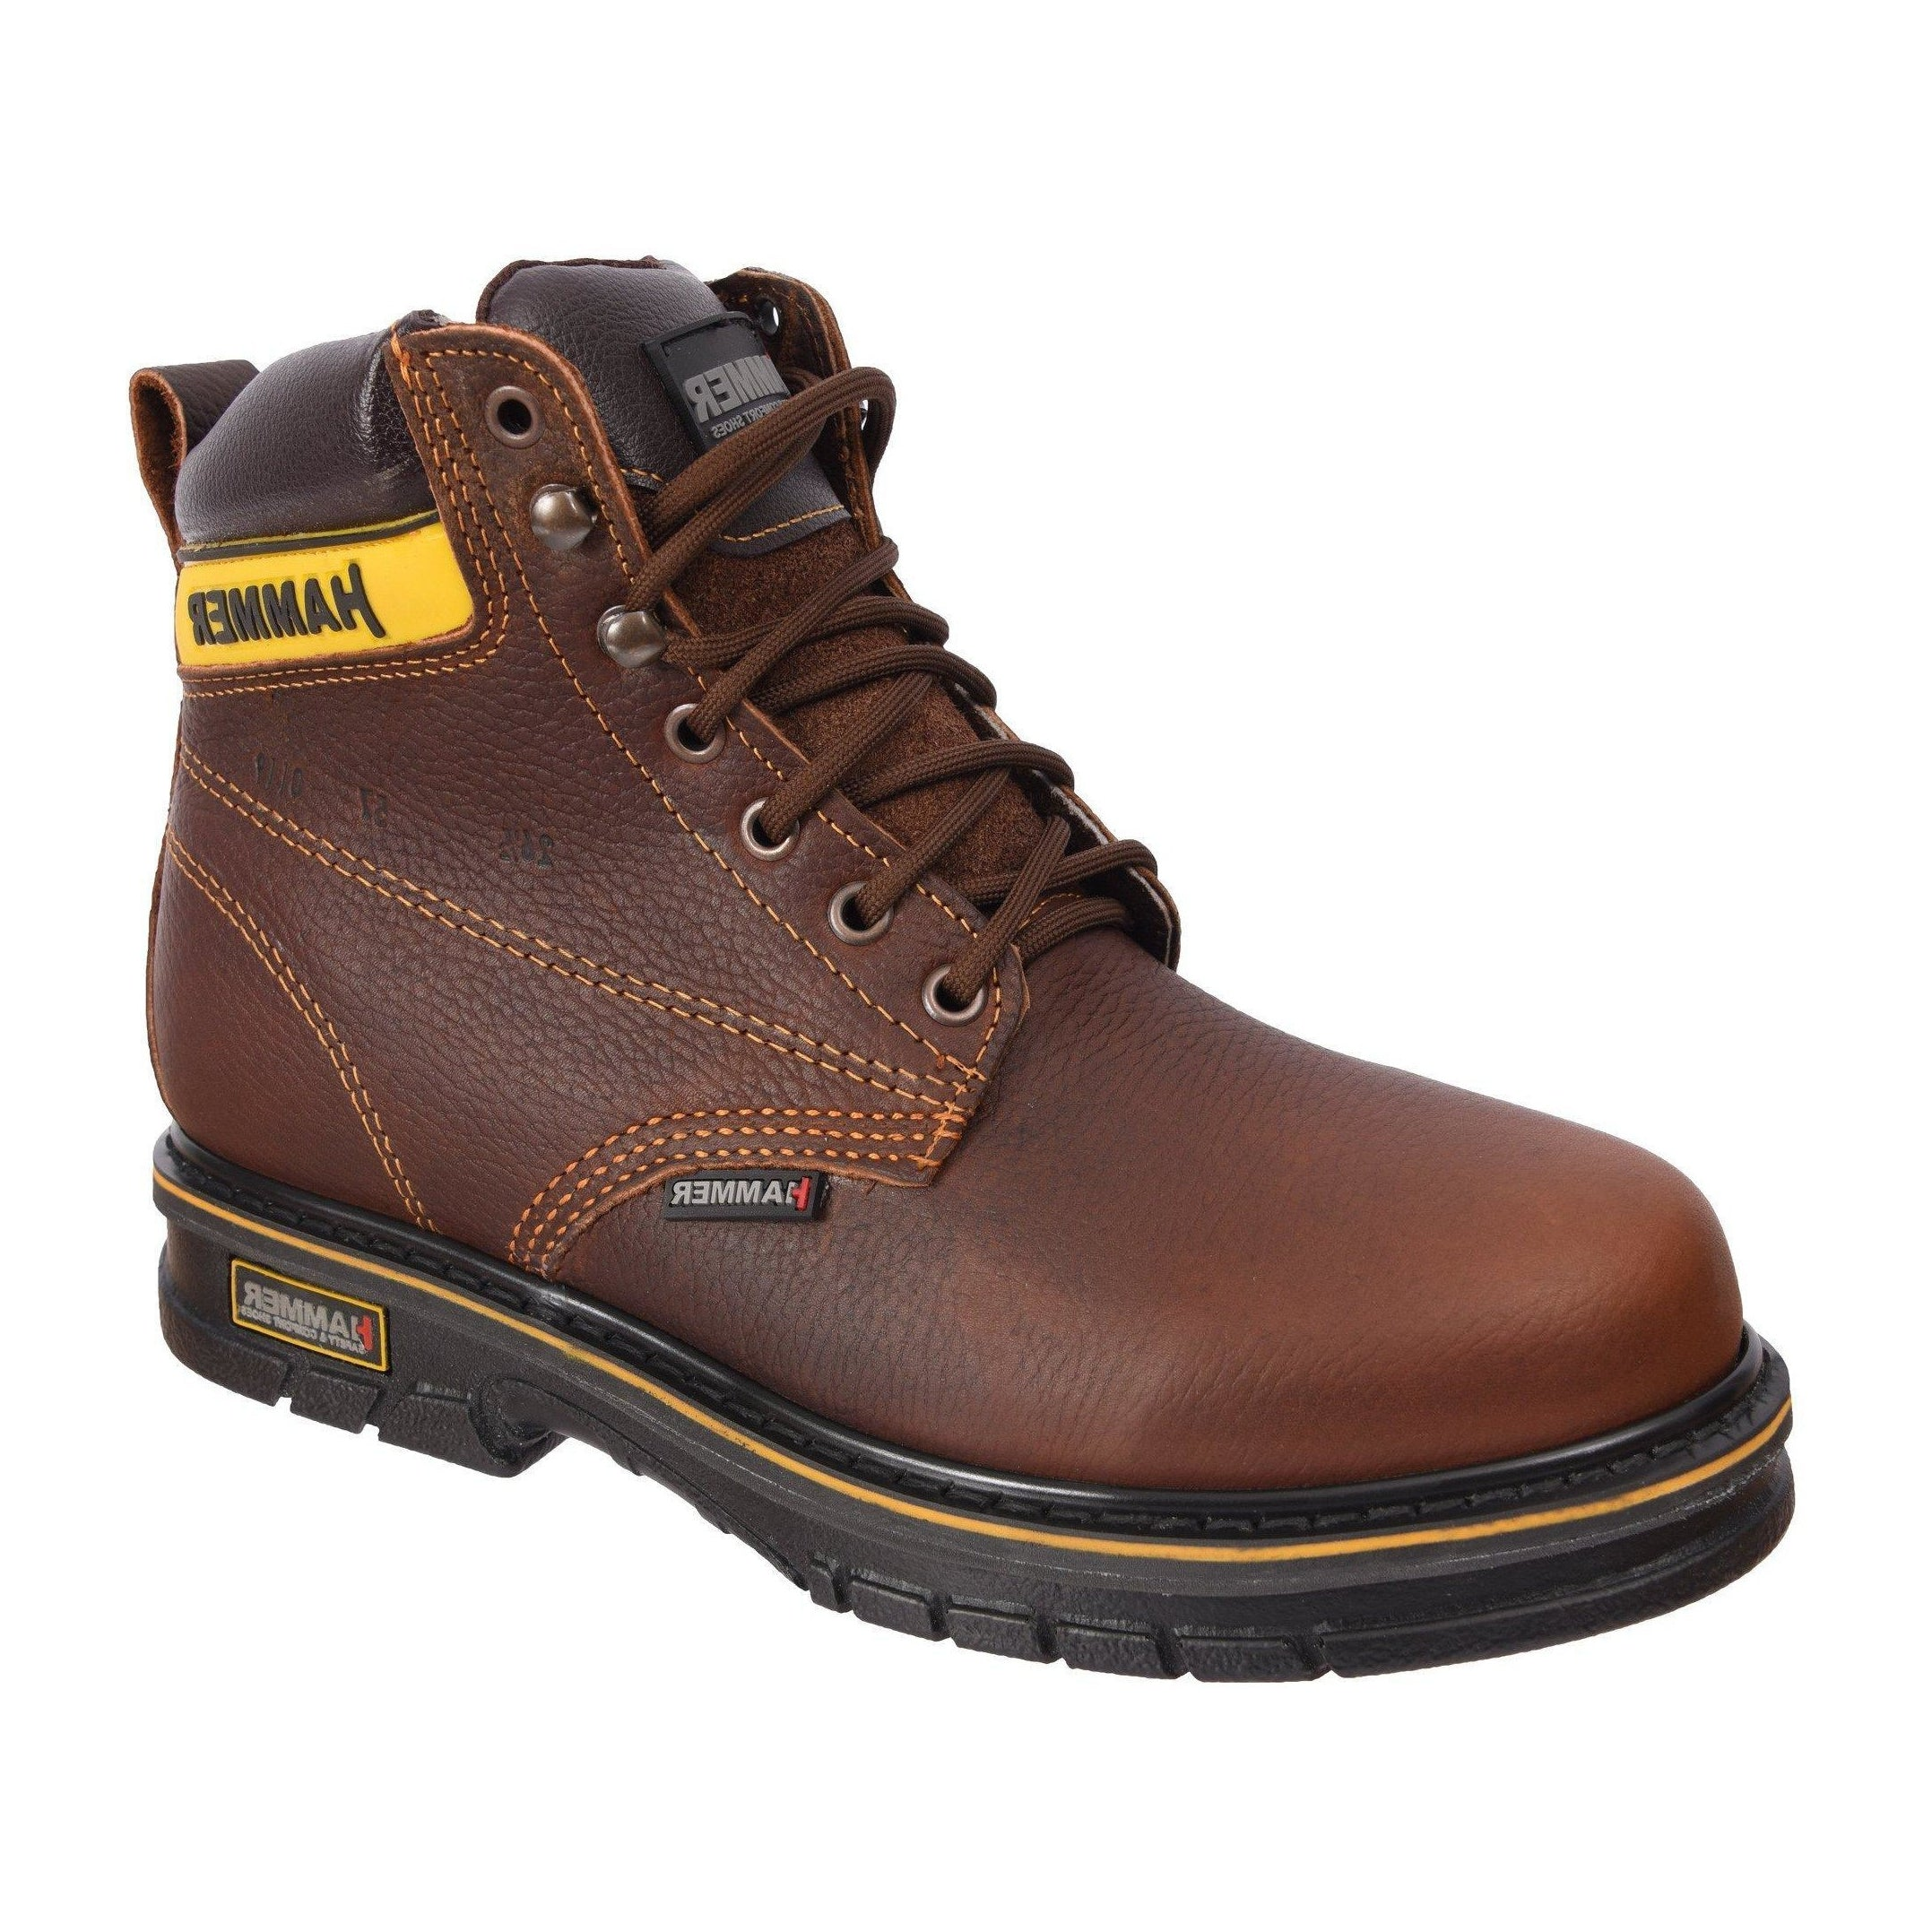 ACM57 Botin de Trabajo Hammer Lace Up Roble